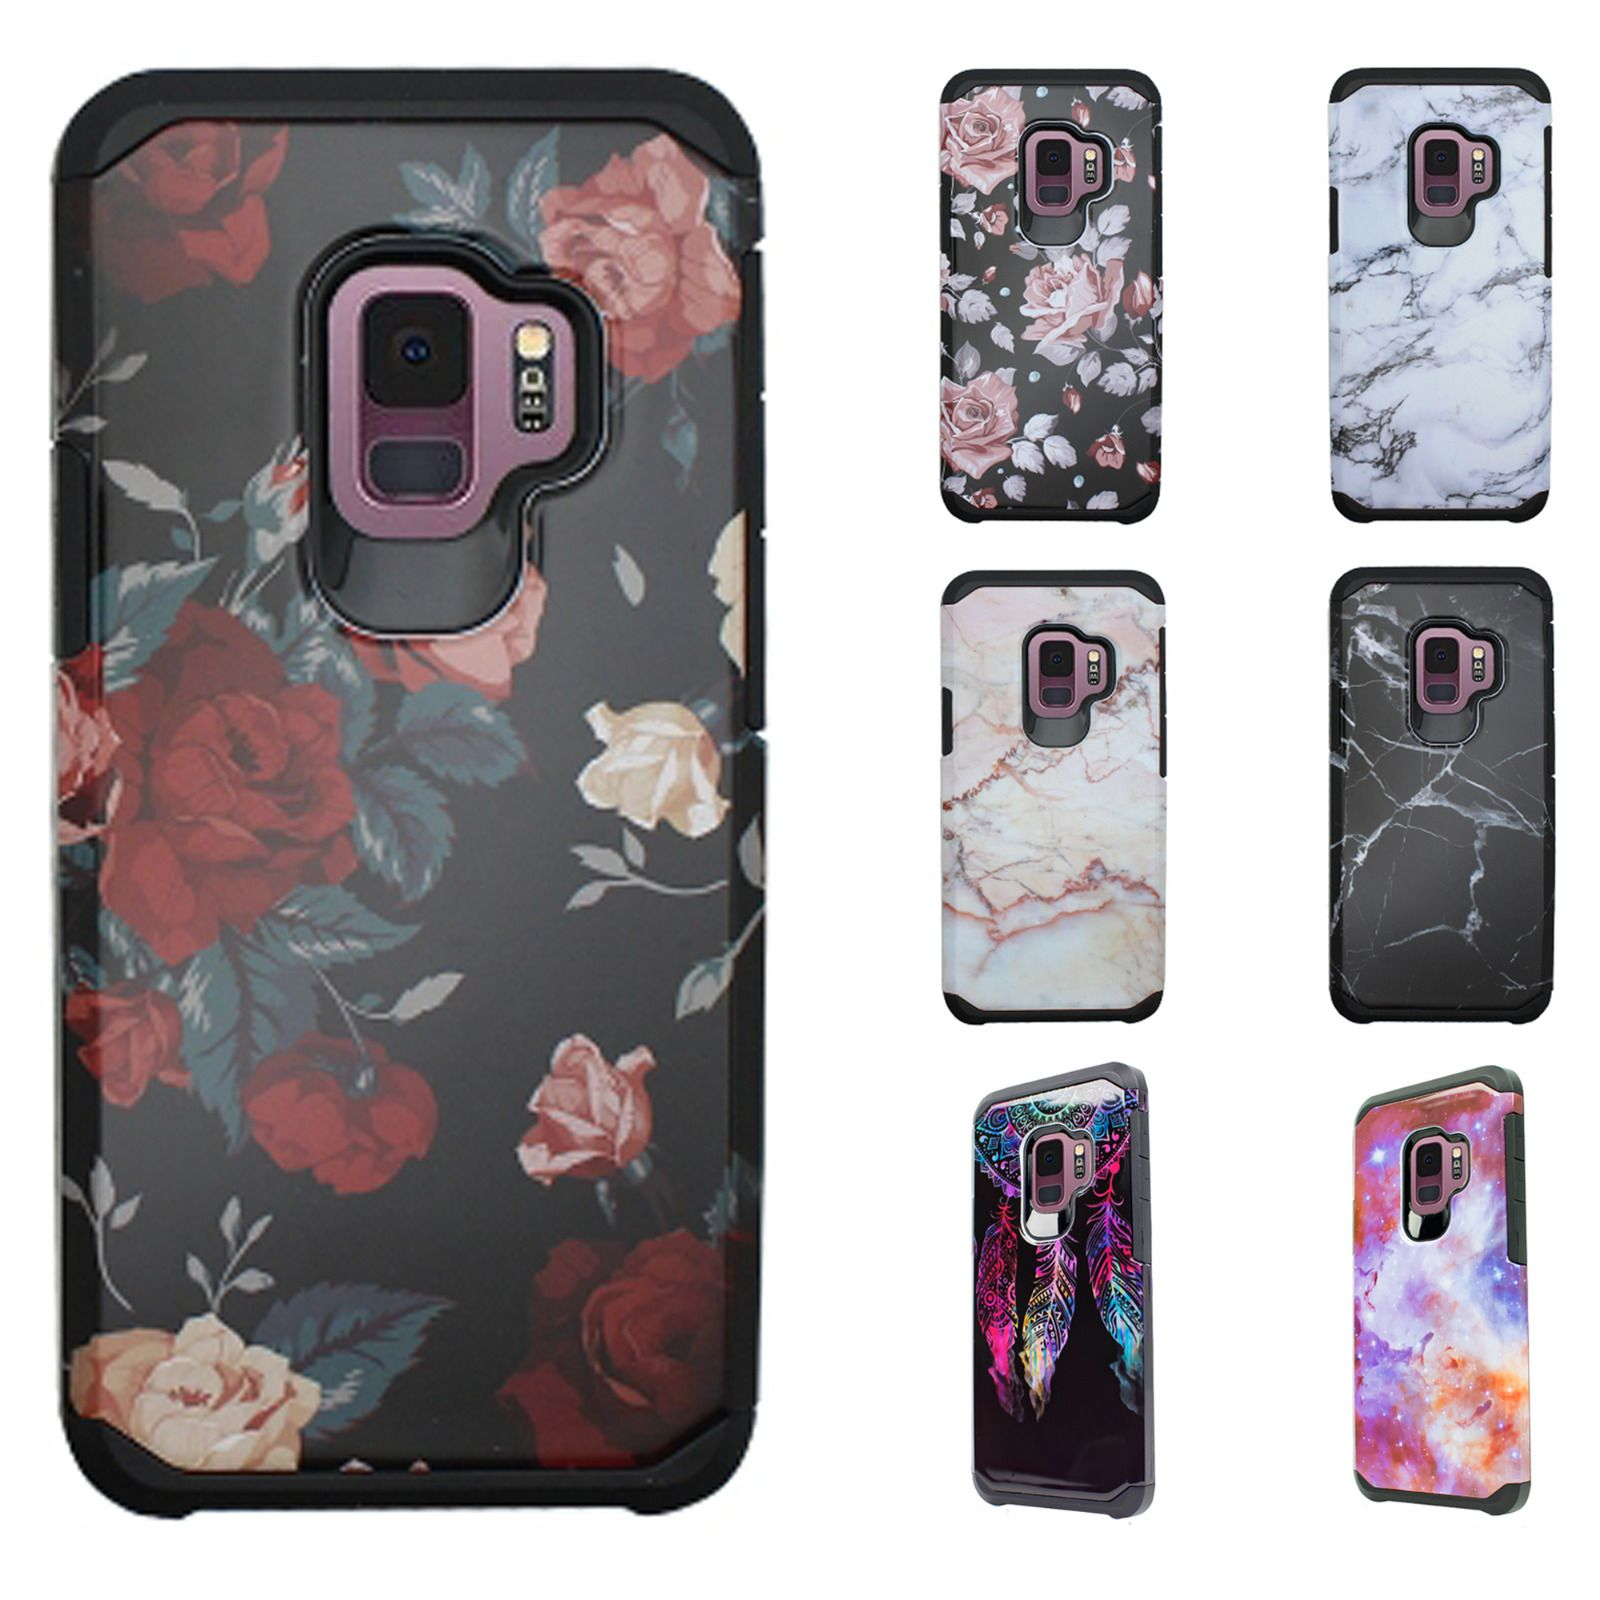 new product c1dbd 114bc $7.95 - For Samsung Galaxy S9 / S9 Plus Hard Astronoot Hybrid Rubber ...